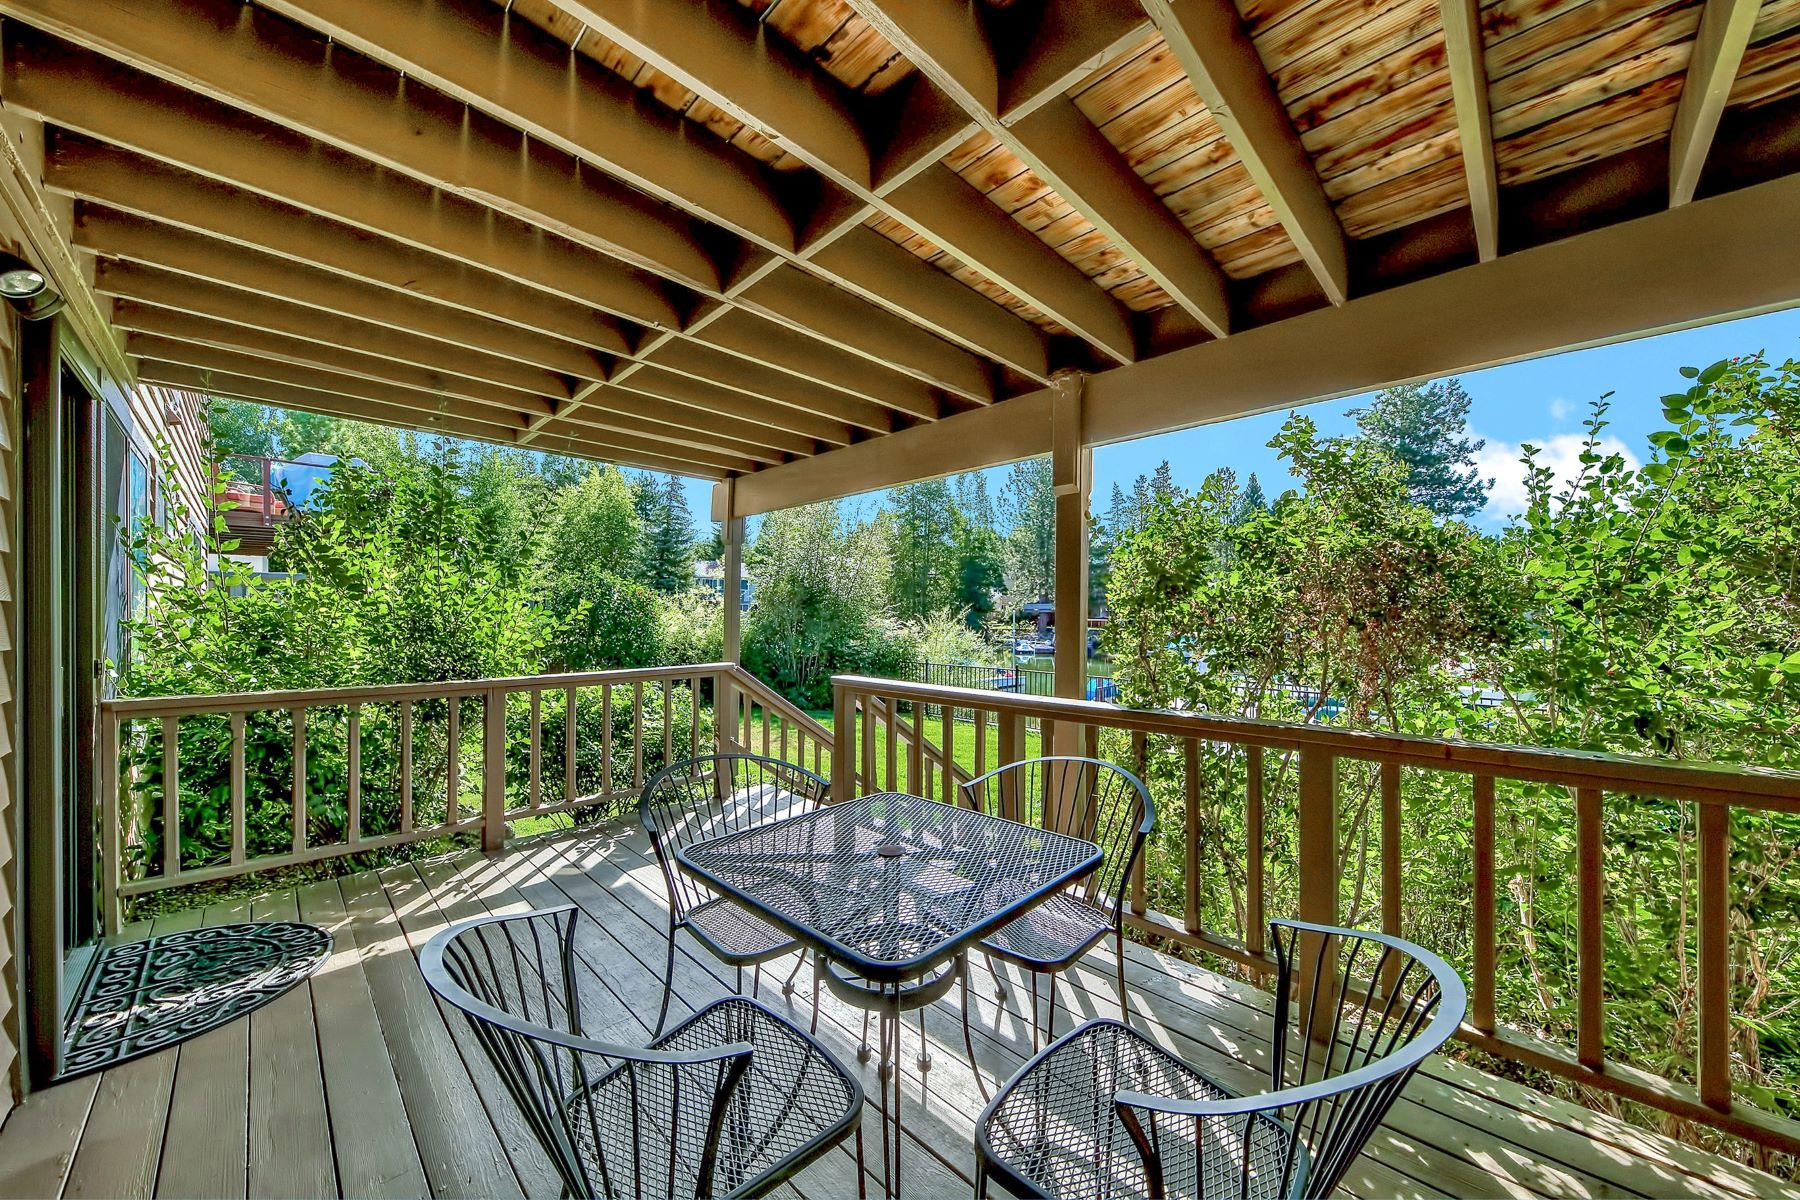 Additional photo for property listing at 2182 Monterey Drive, South Lake Tahoe, CA 96150 2182 Monterey Drive 南太浩湖, 加利福尼亚州 96150 美国